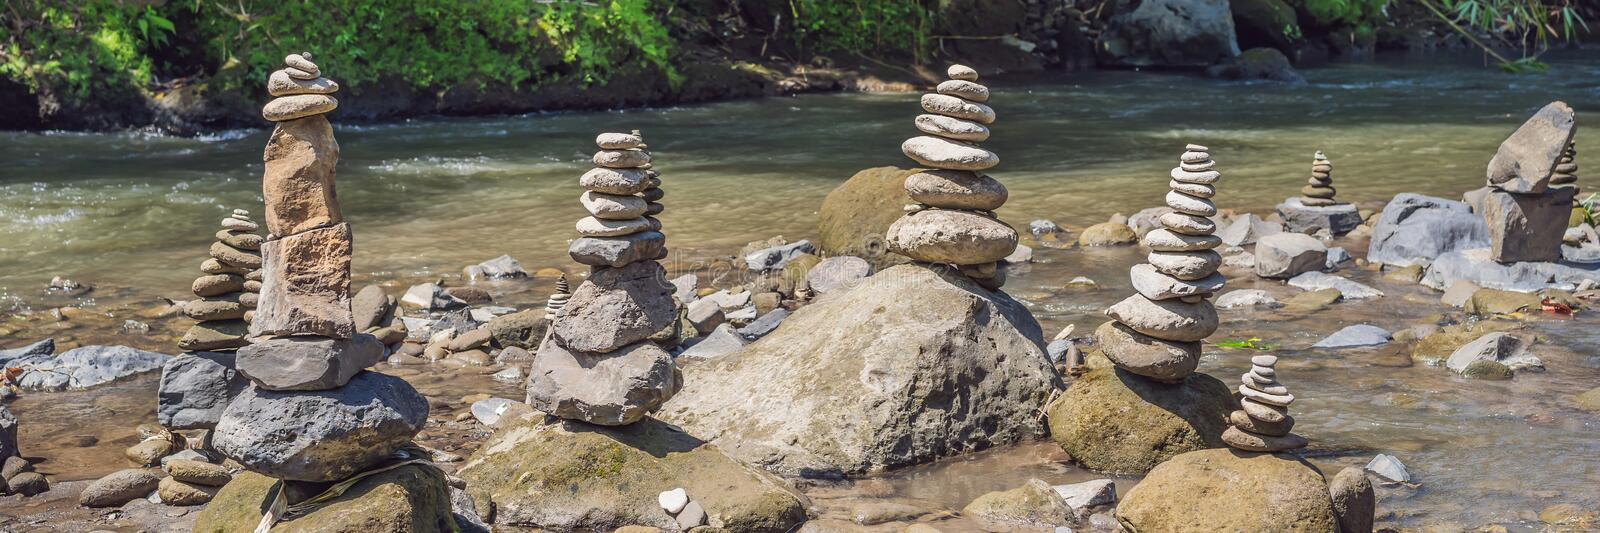 Inuksuk Native Rock Pile in a Creek BANNER, LONG FORMAT. Inuksuk Native Rock Pile in a Creek. BANNER, LONG FORMAT royalty free stock images